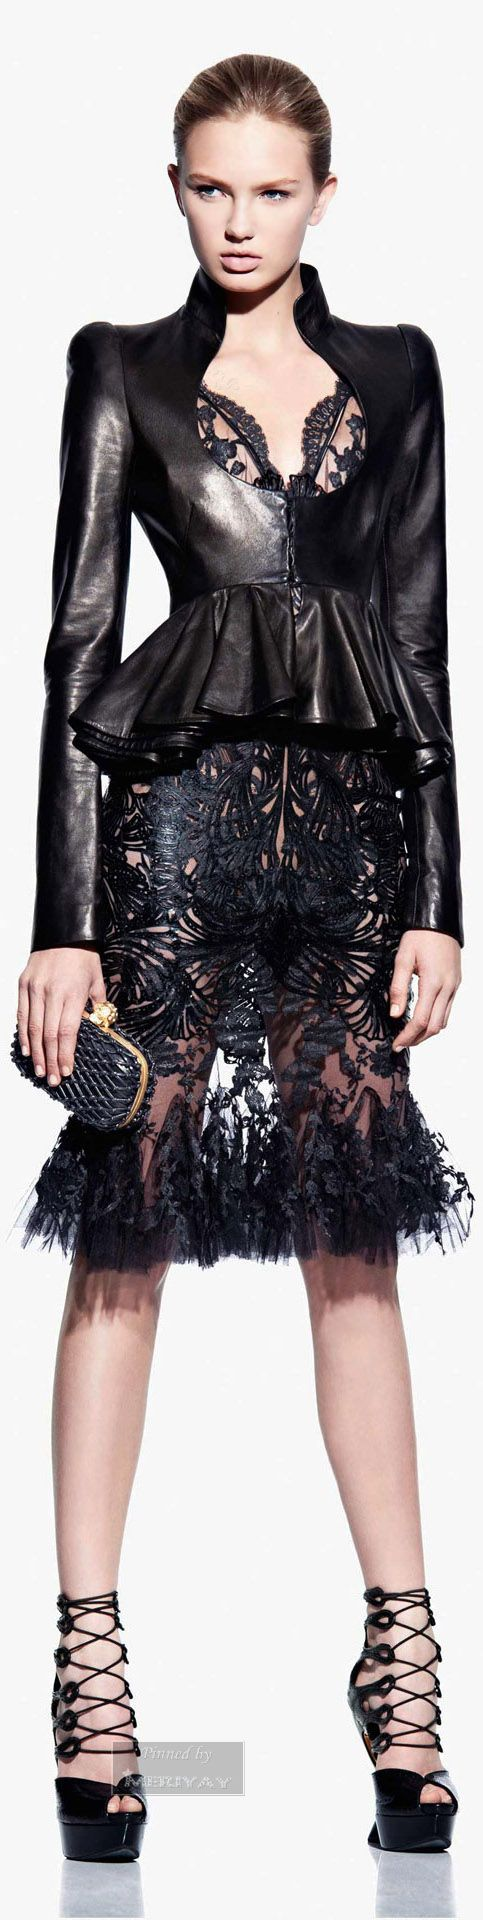 25 best ideas about alexander mcqueen dresses on pinterest for Mac alexander mcqueen